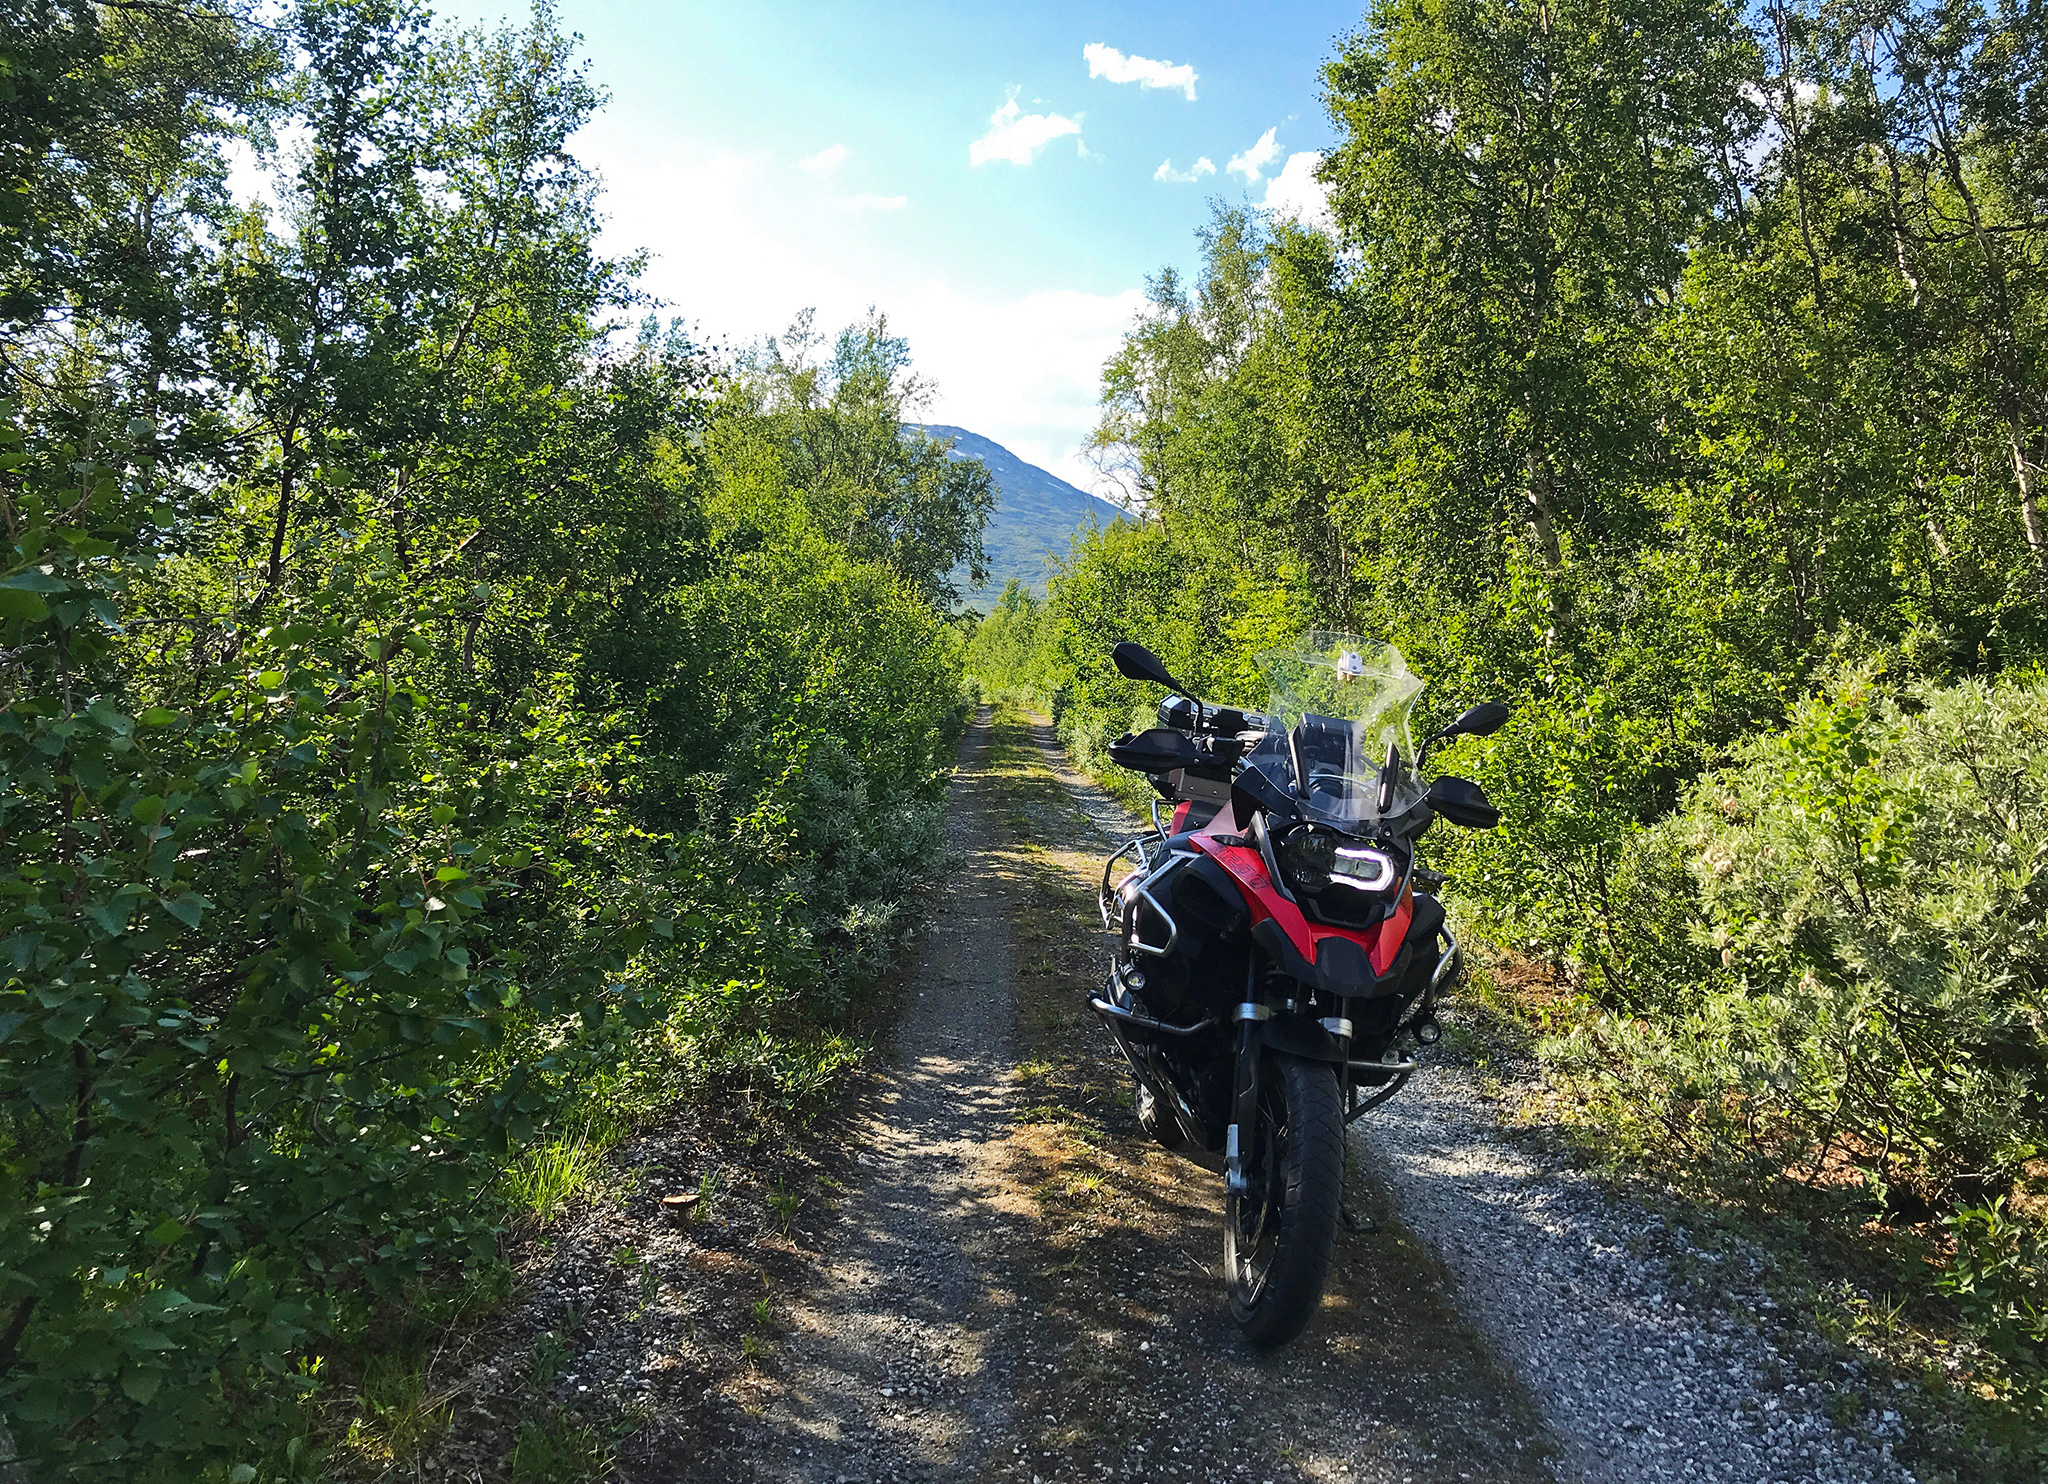 The old overgrown road to Geiranger, an interesting experience